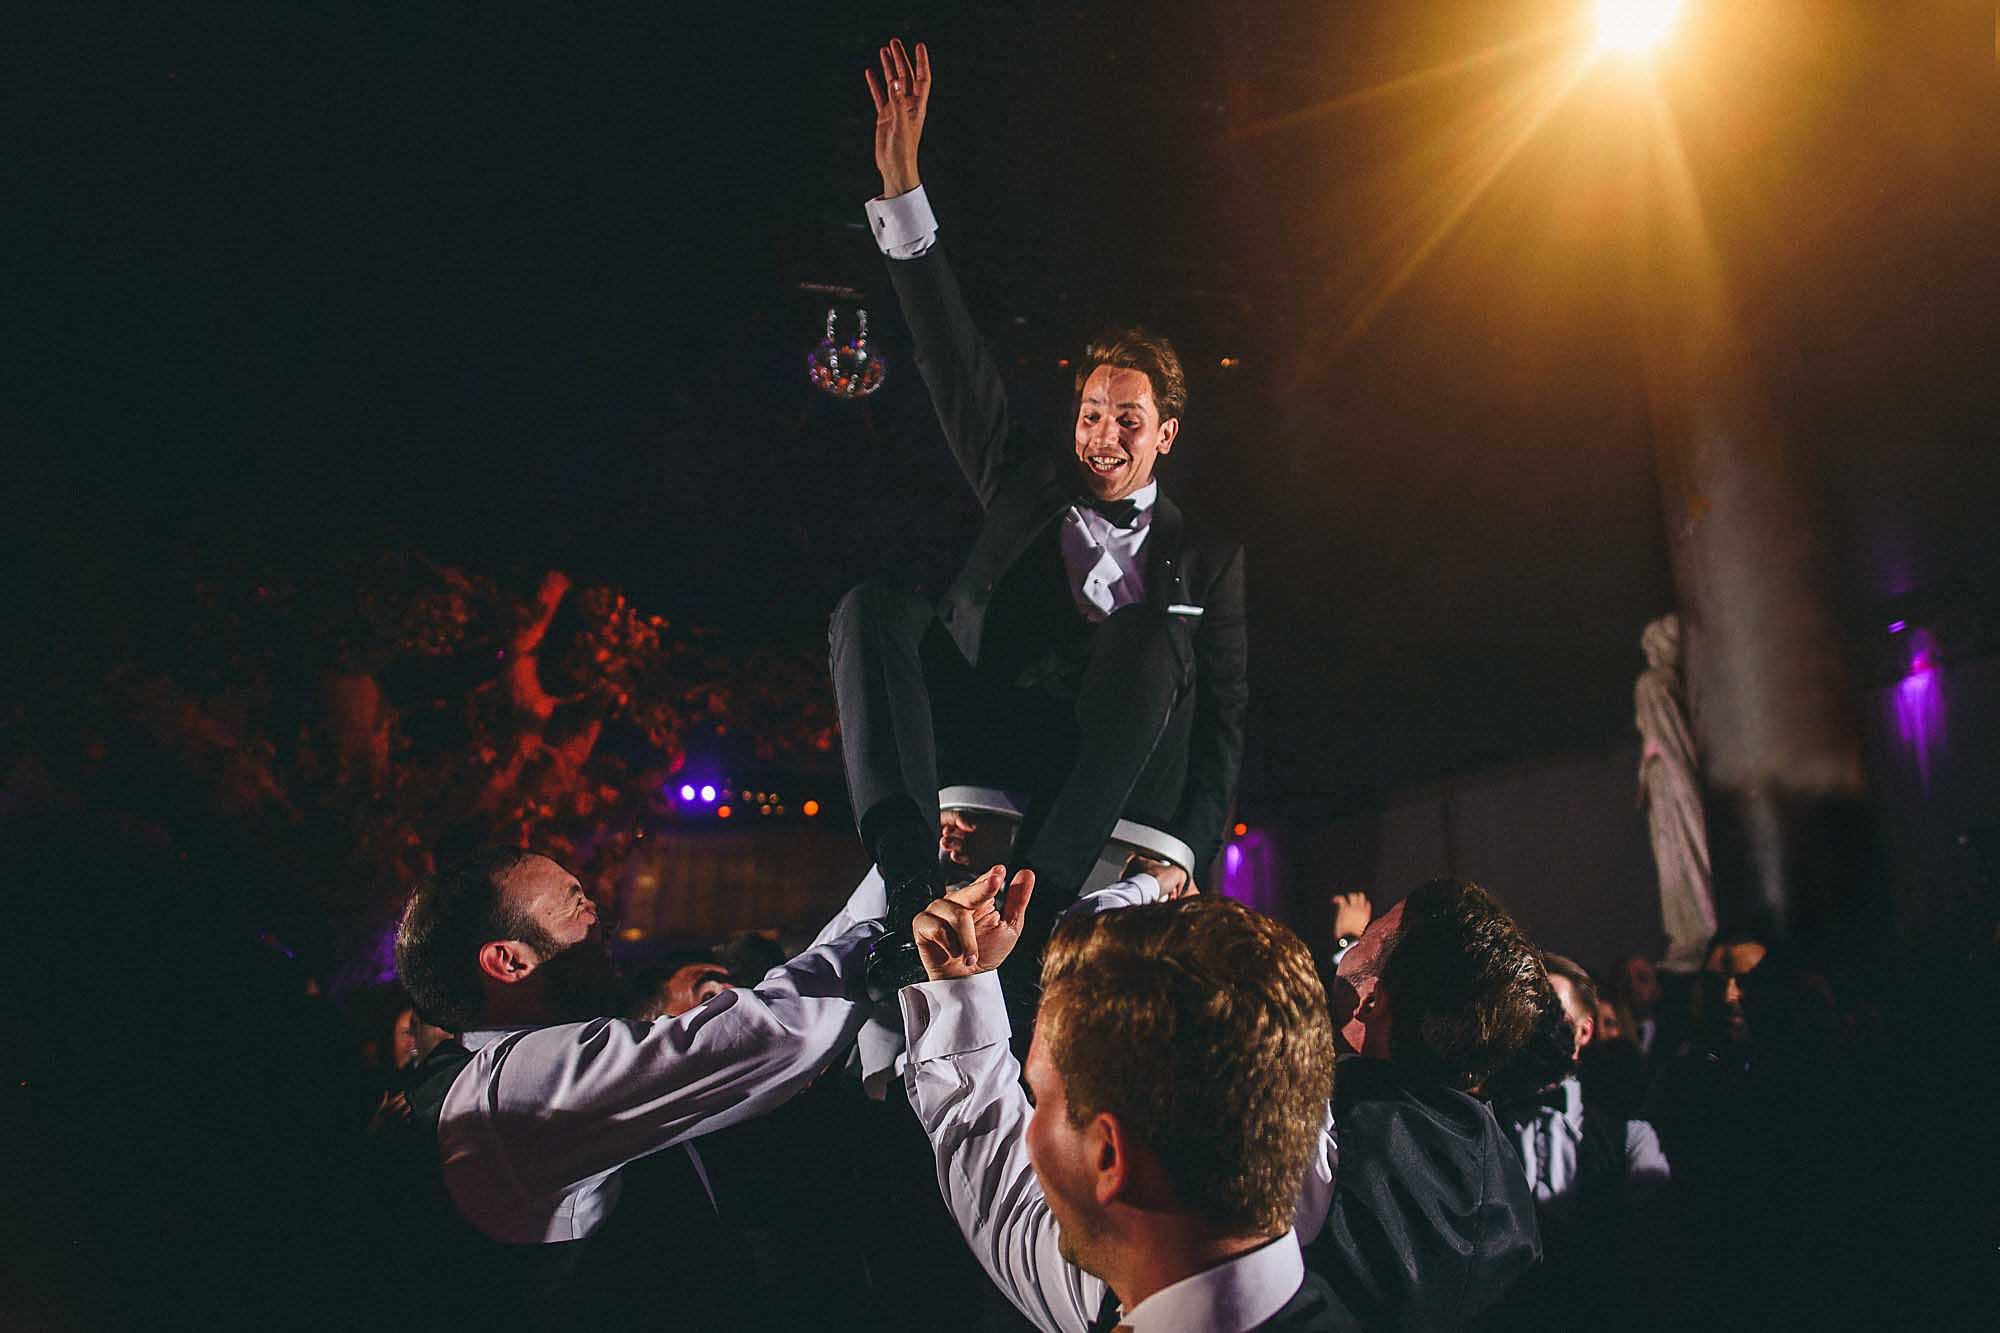 Jewish Groom Chair Dance